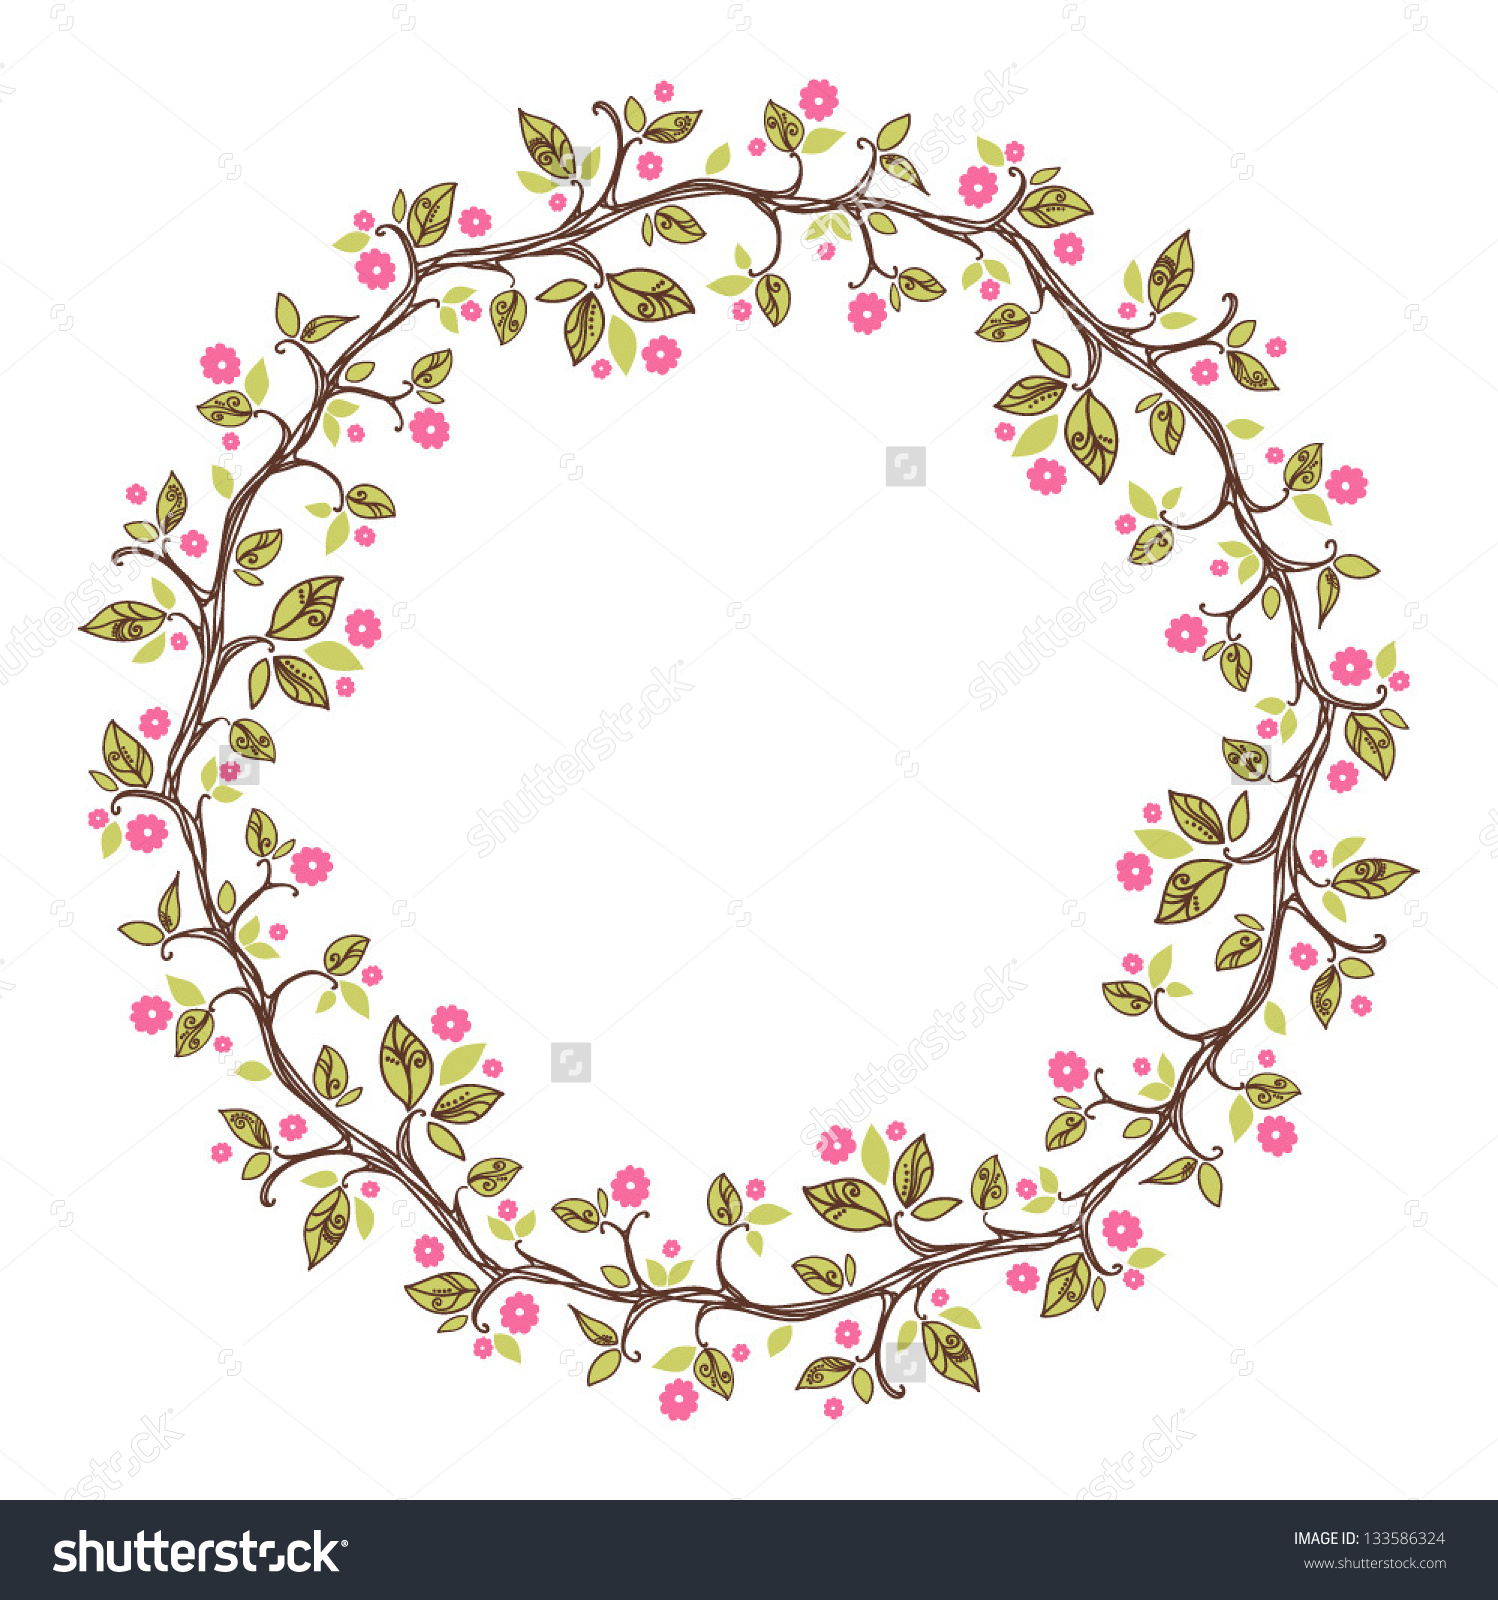 Card Floral Pattern Wreath Cherry Blossom Stock Vector 133586324.